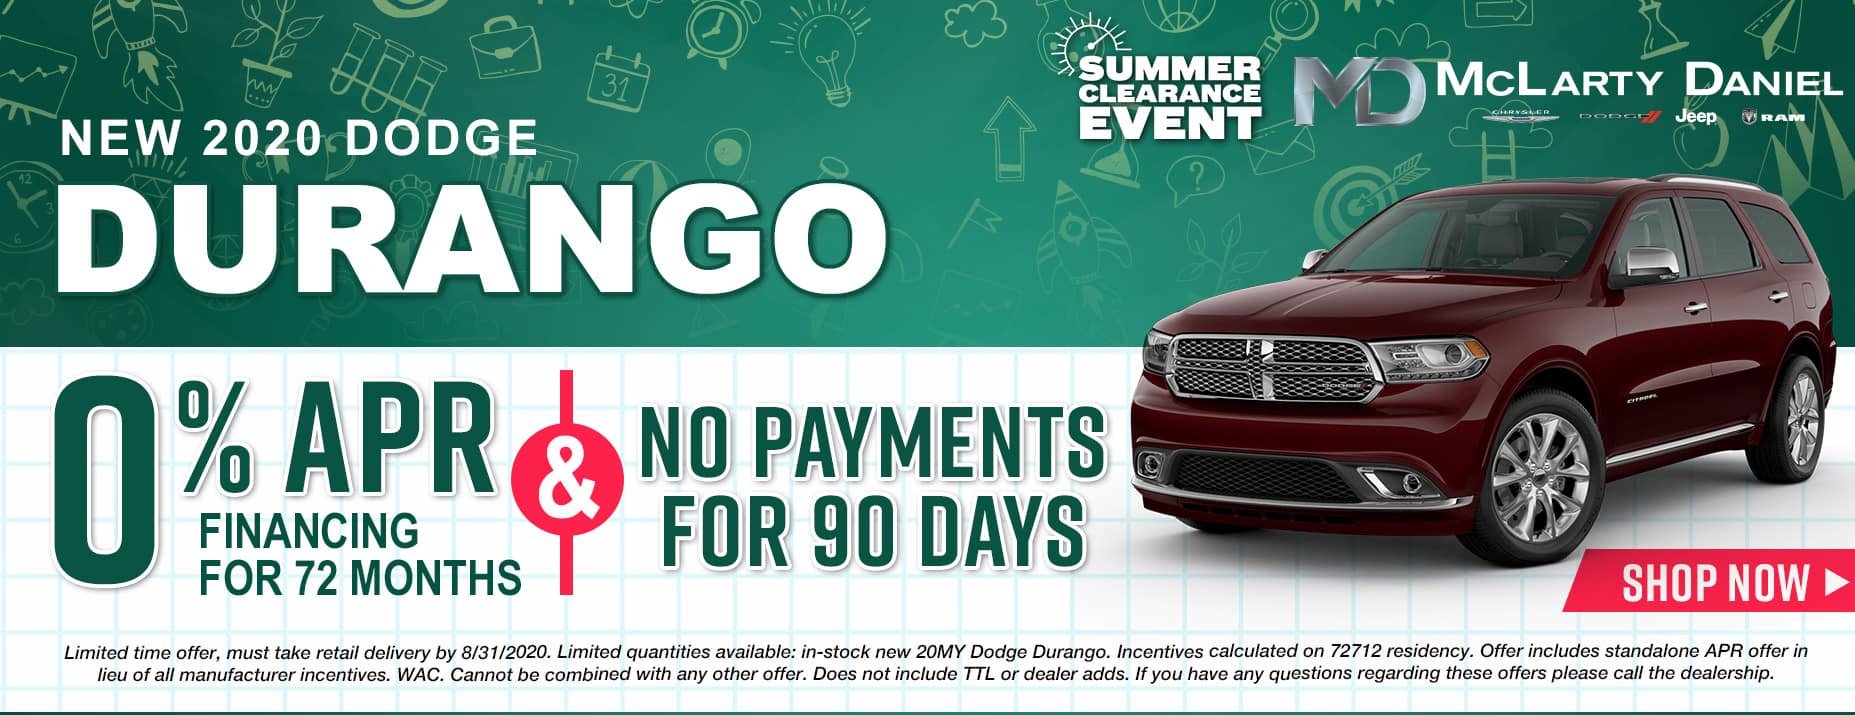 0% APR for 72 months and NO PAYMENTS FOR 90 DAYS available on 2020 Dodge Durango!